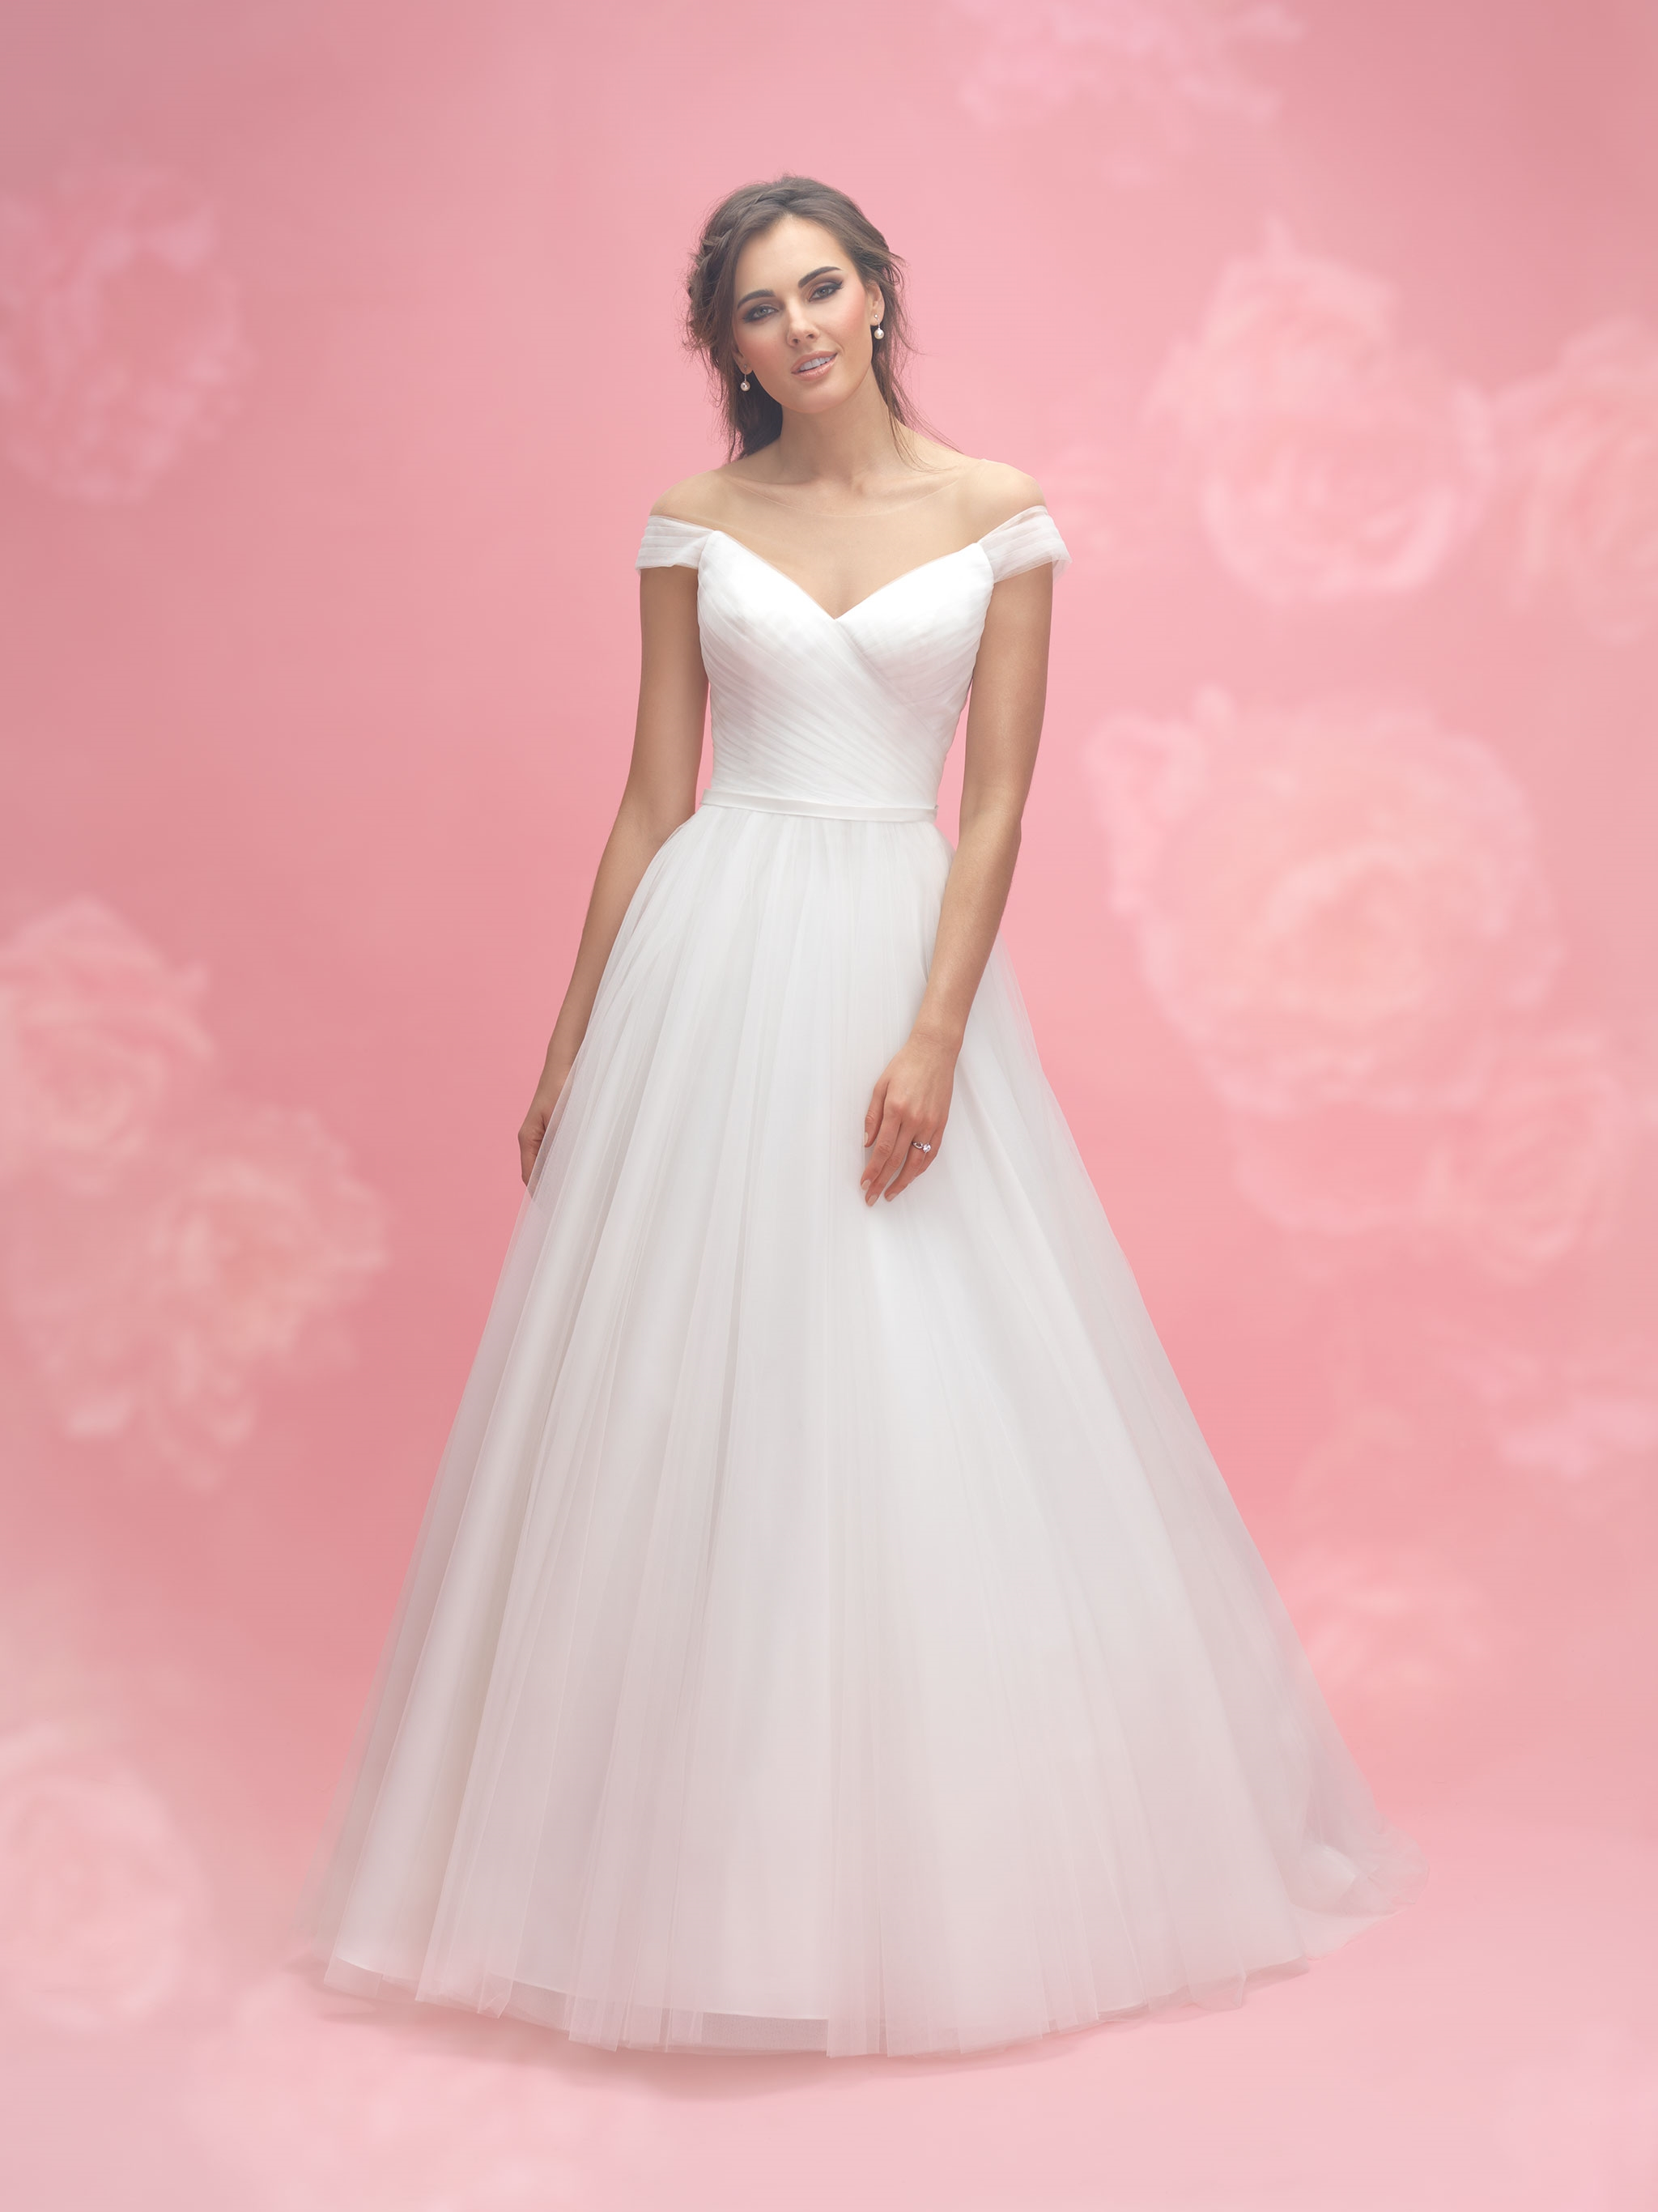 David Tutera Wedding Dresses Review Of Elnora Bridal Gown For Mon